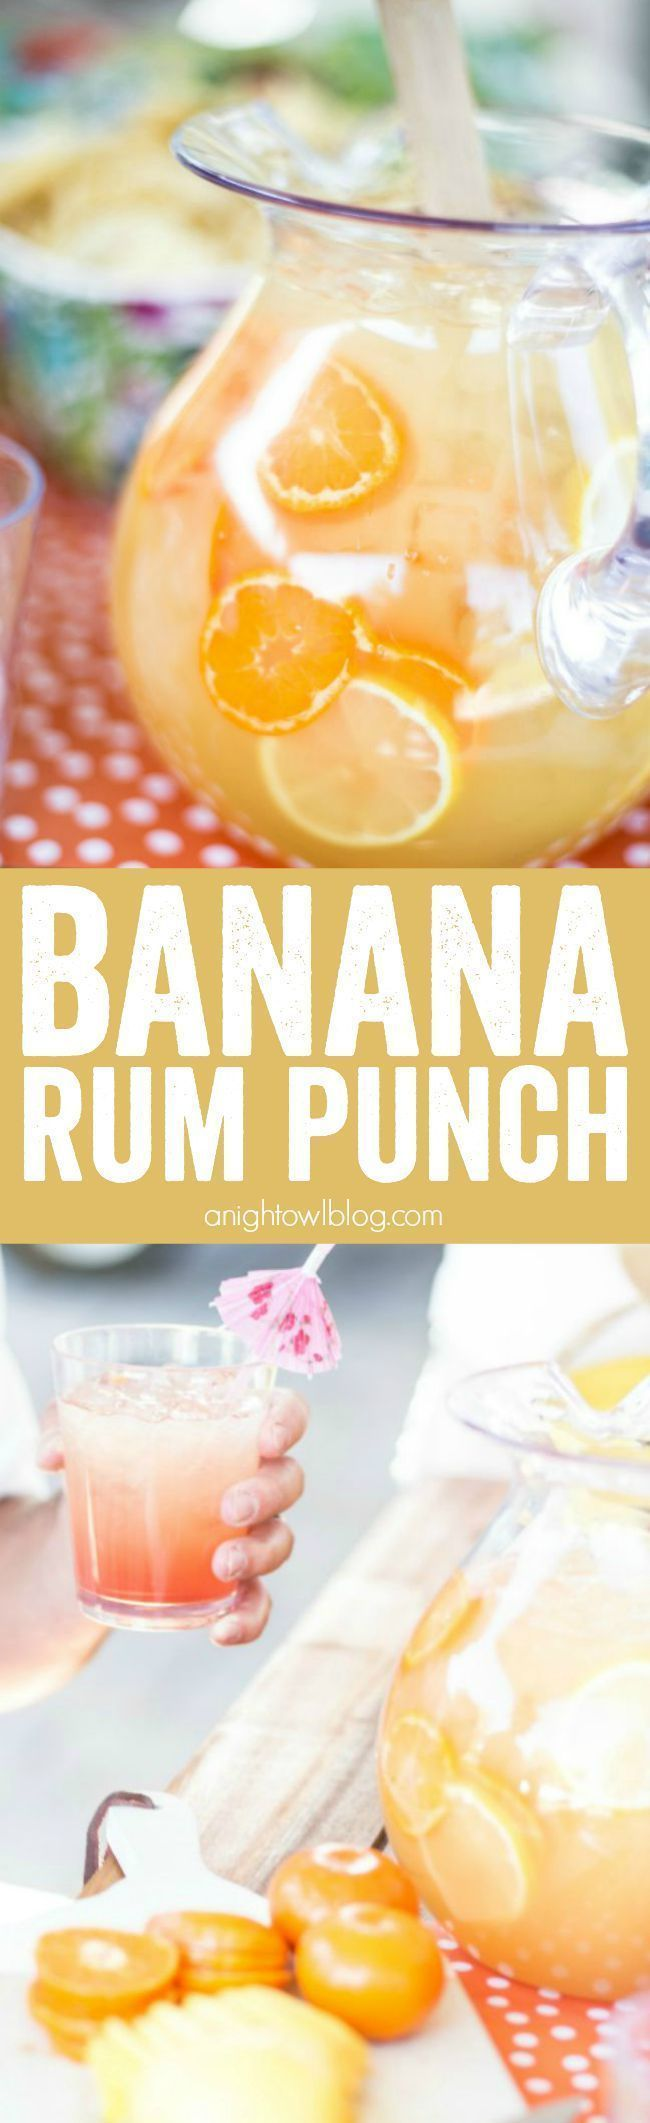 Banana Rum Punch - A delicious combination of fruity flavors that make for one delicious cocktail, perfect for entertaining! #rumdrinks